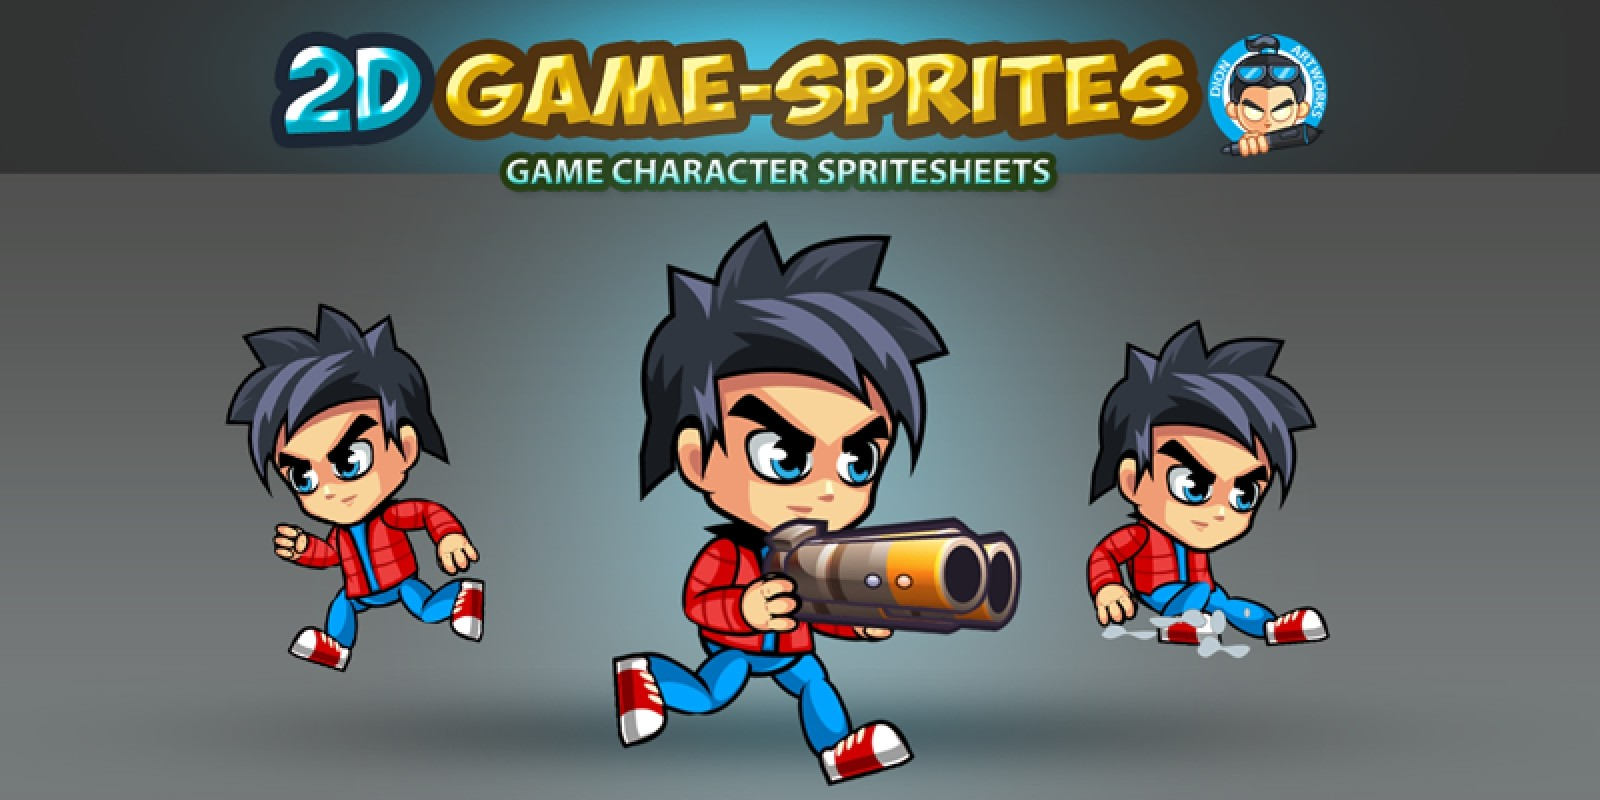 2d game character sprites 3 - game graphic assets | codester